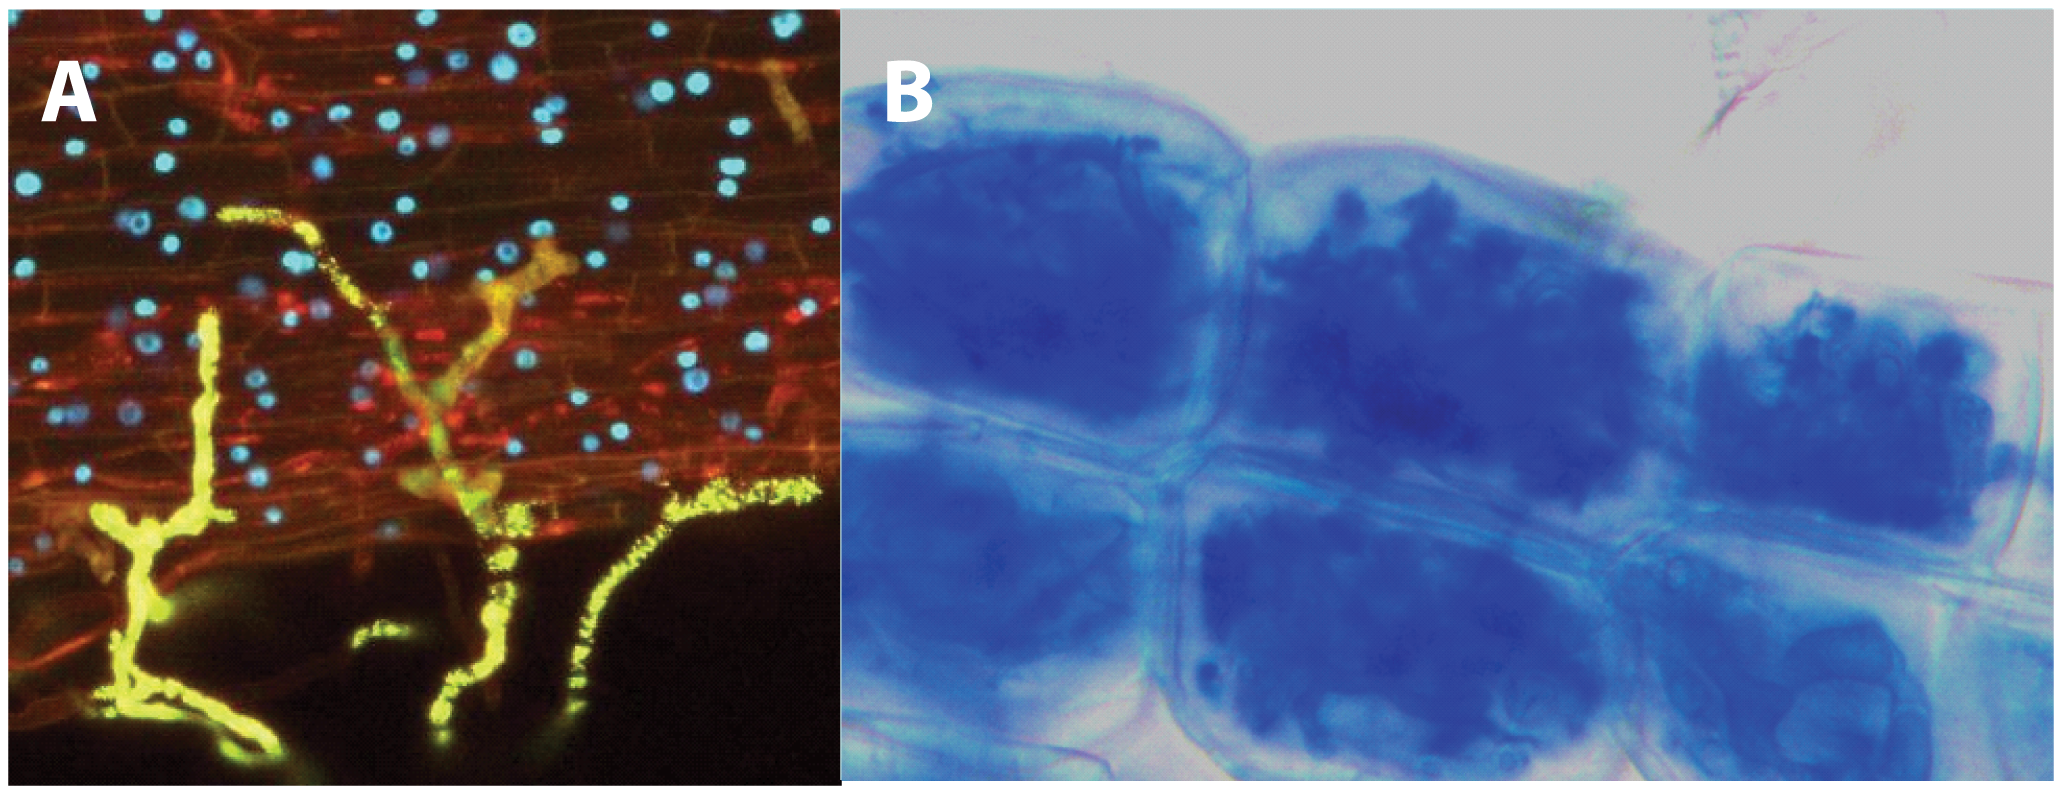 Establishment of the mycorrhizal symbiosis.